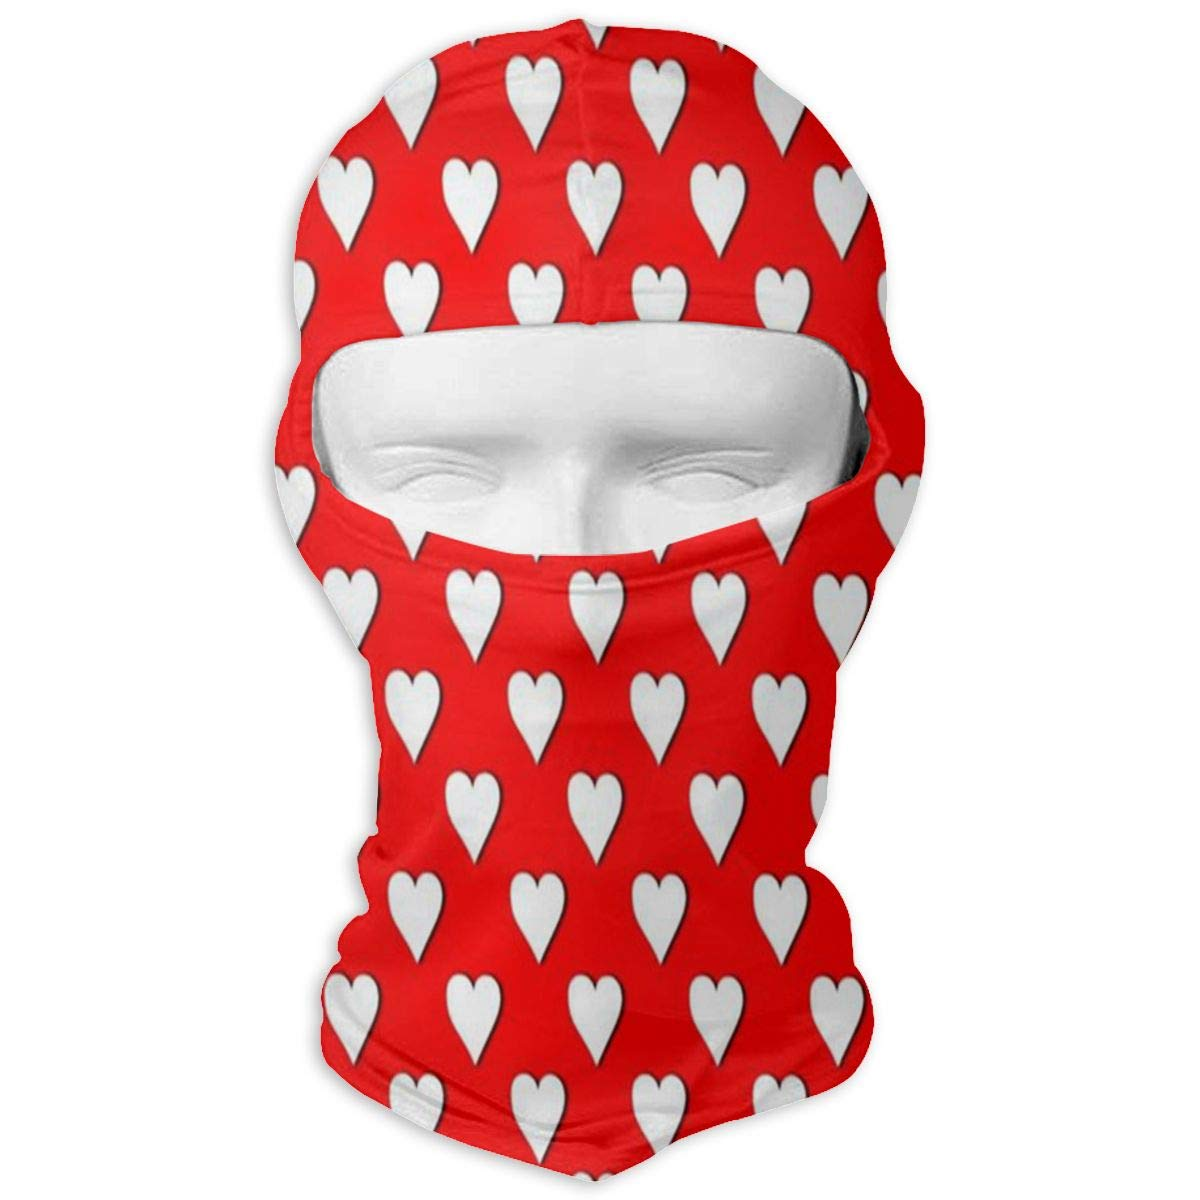 Balaclava Red Polka Heart Dot Full Face Masks Ski Headwear Motorcycle Hood for Cycling Sports Mountaineering